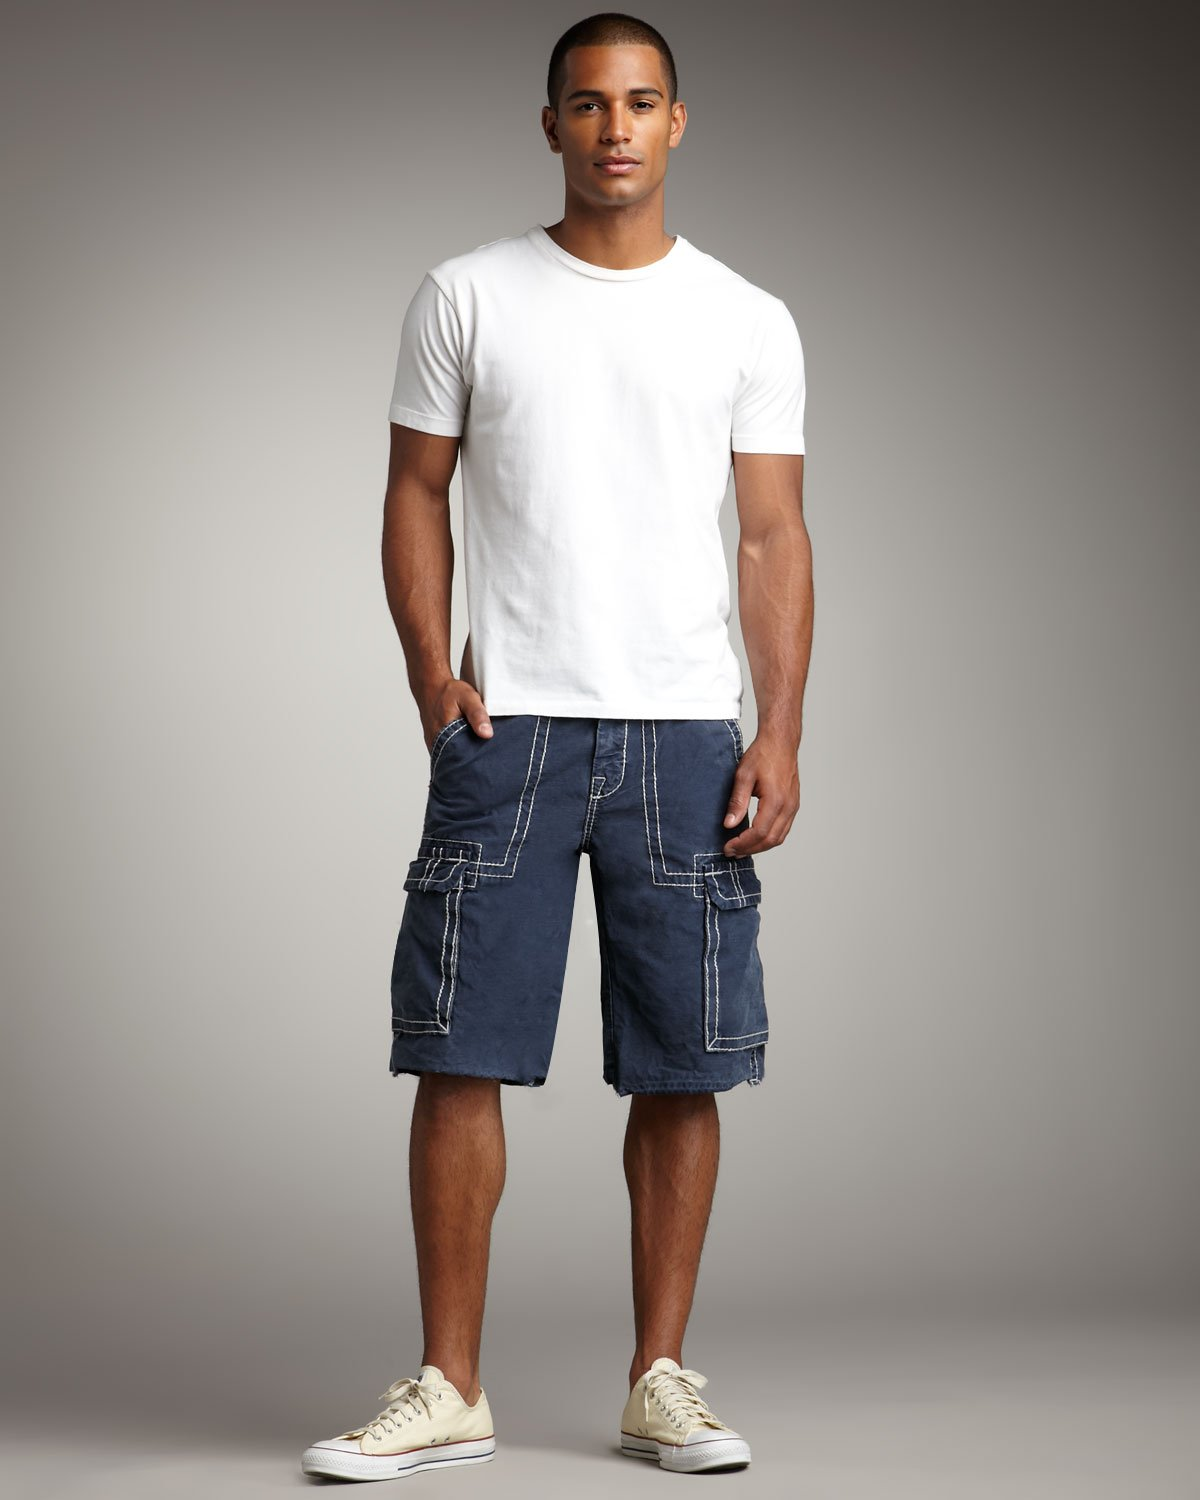 Lyst - True Religion Isaac Cargo Shorts in Blue for Men